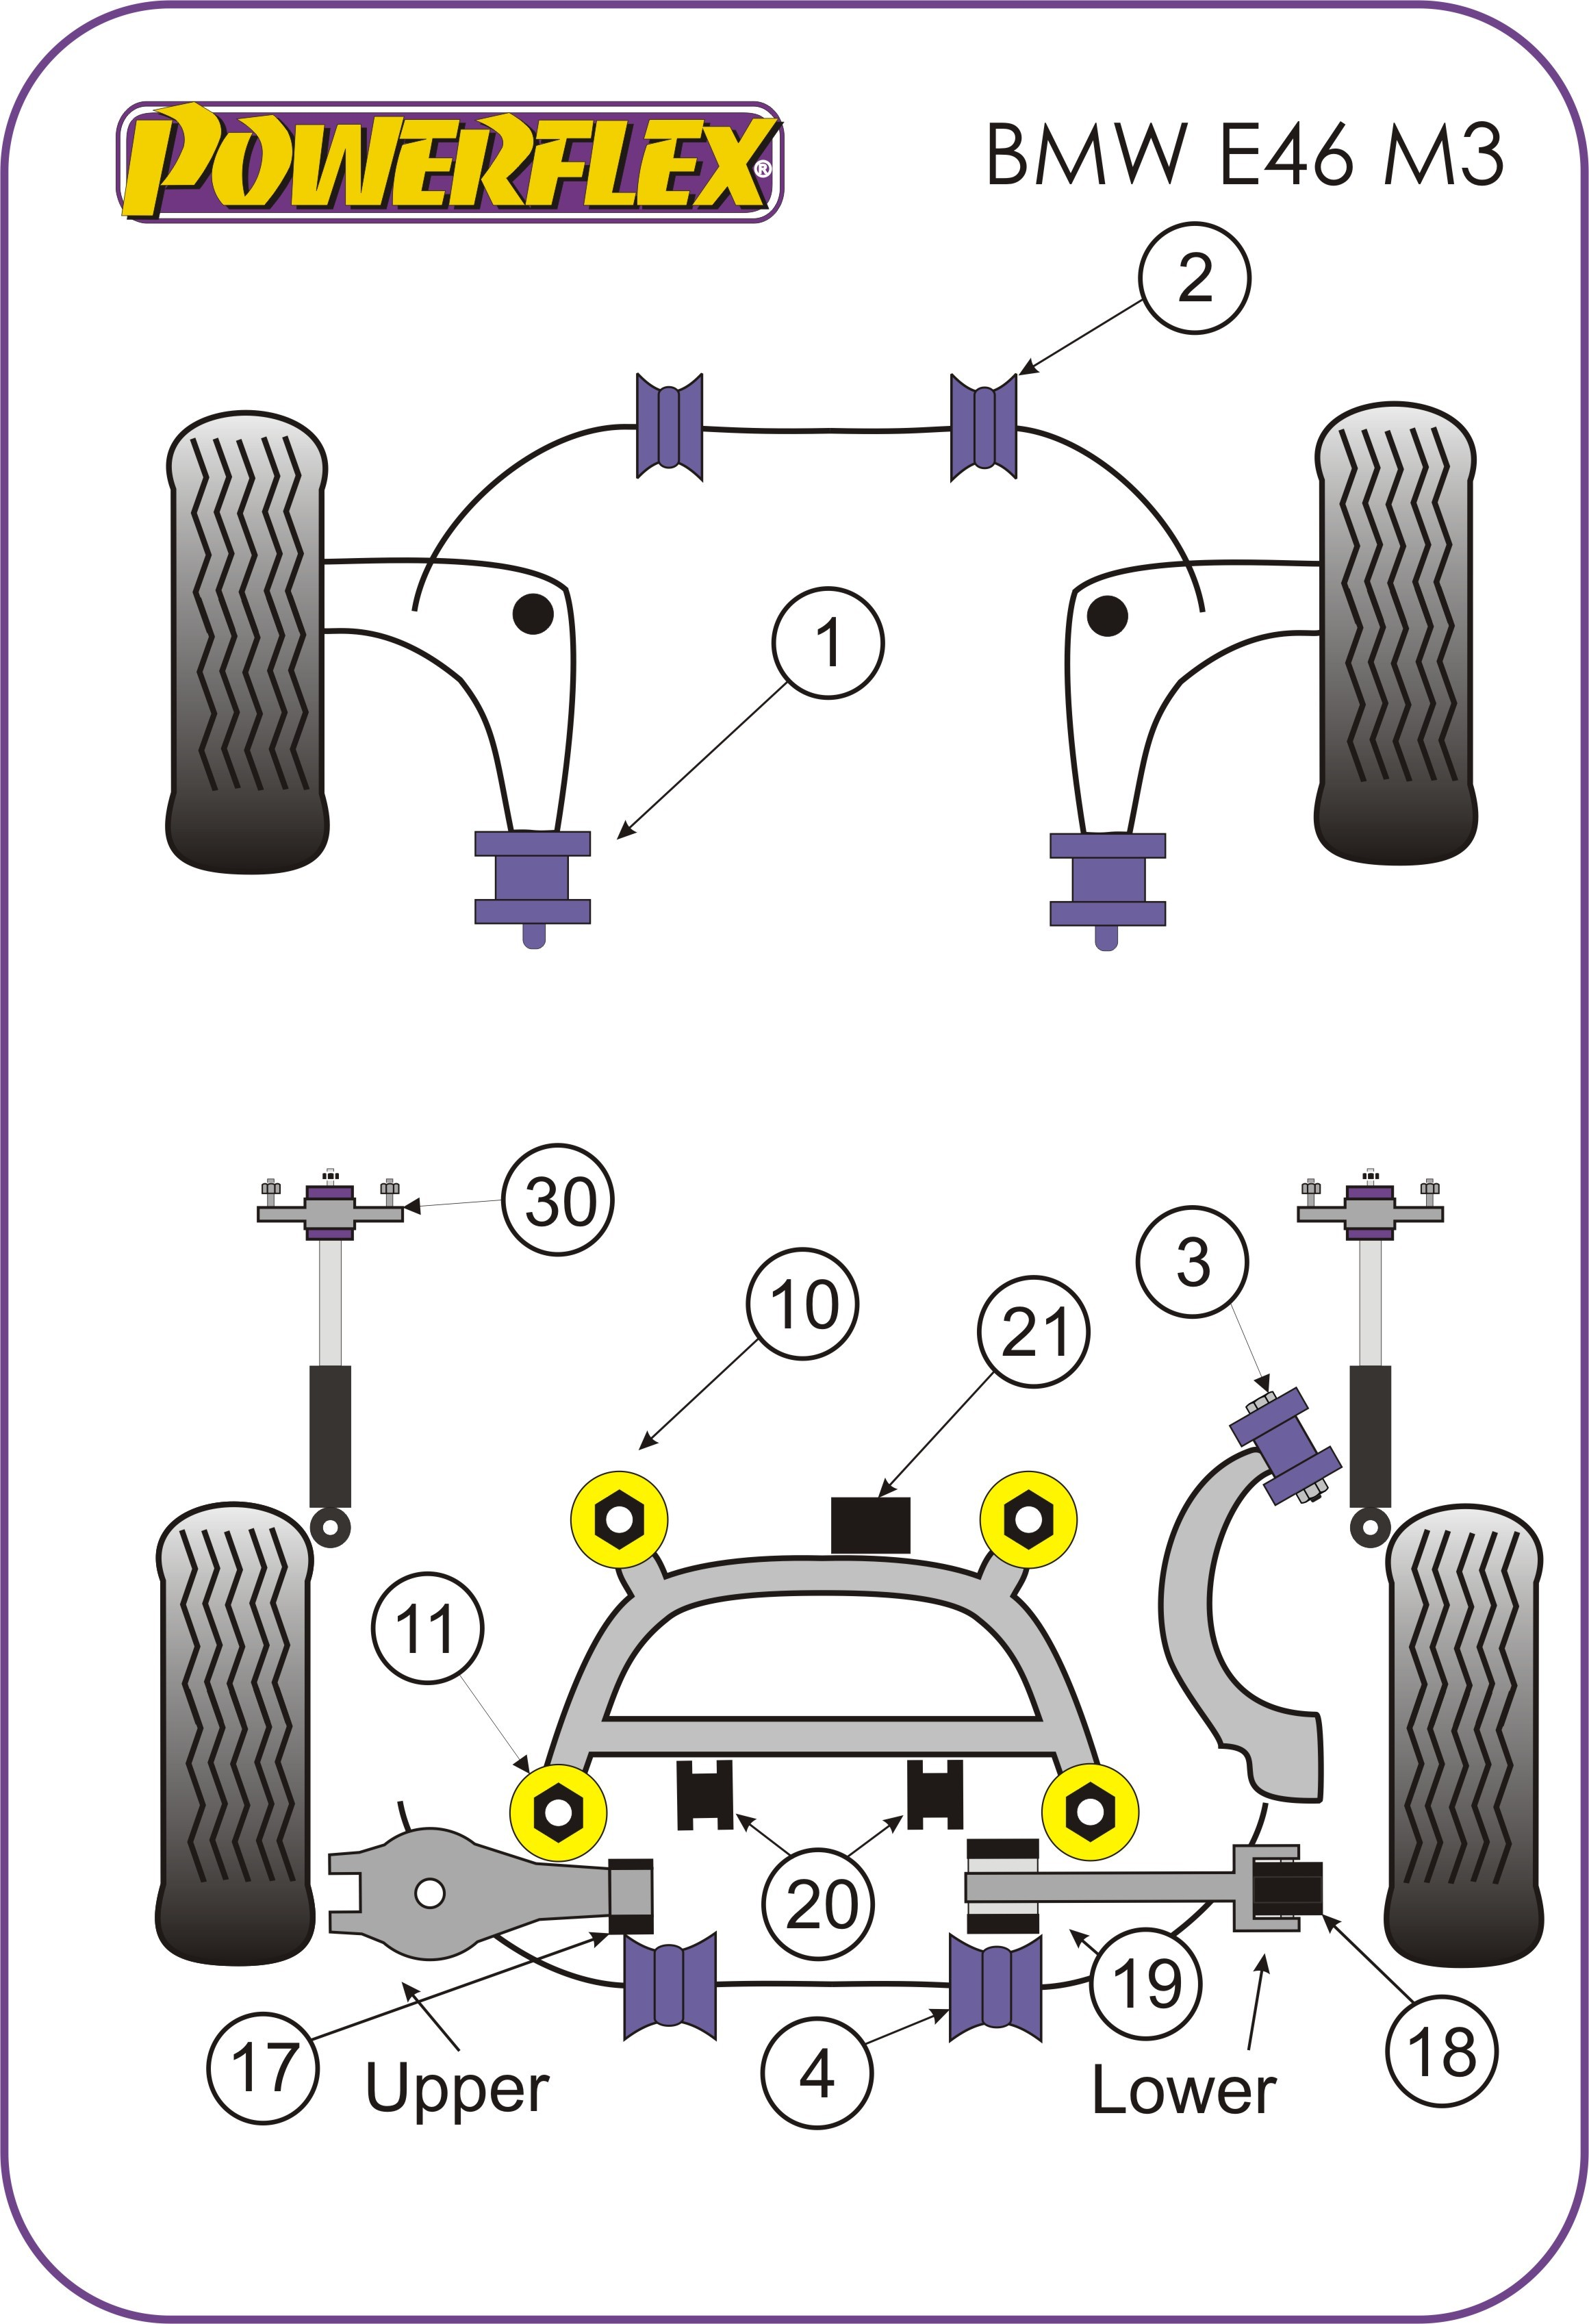 Car Rear Suspension Diagram Pfr5 5630 10 Road Series Pack Of 2 Powerflex Poly Bushes Of Car Rear Suspension Diagram